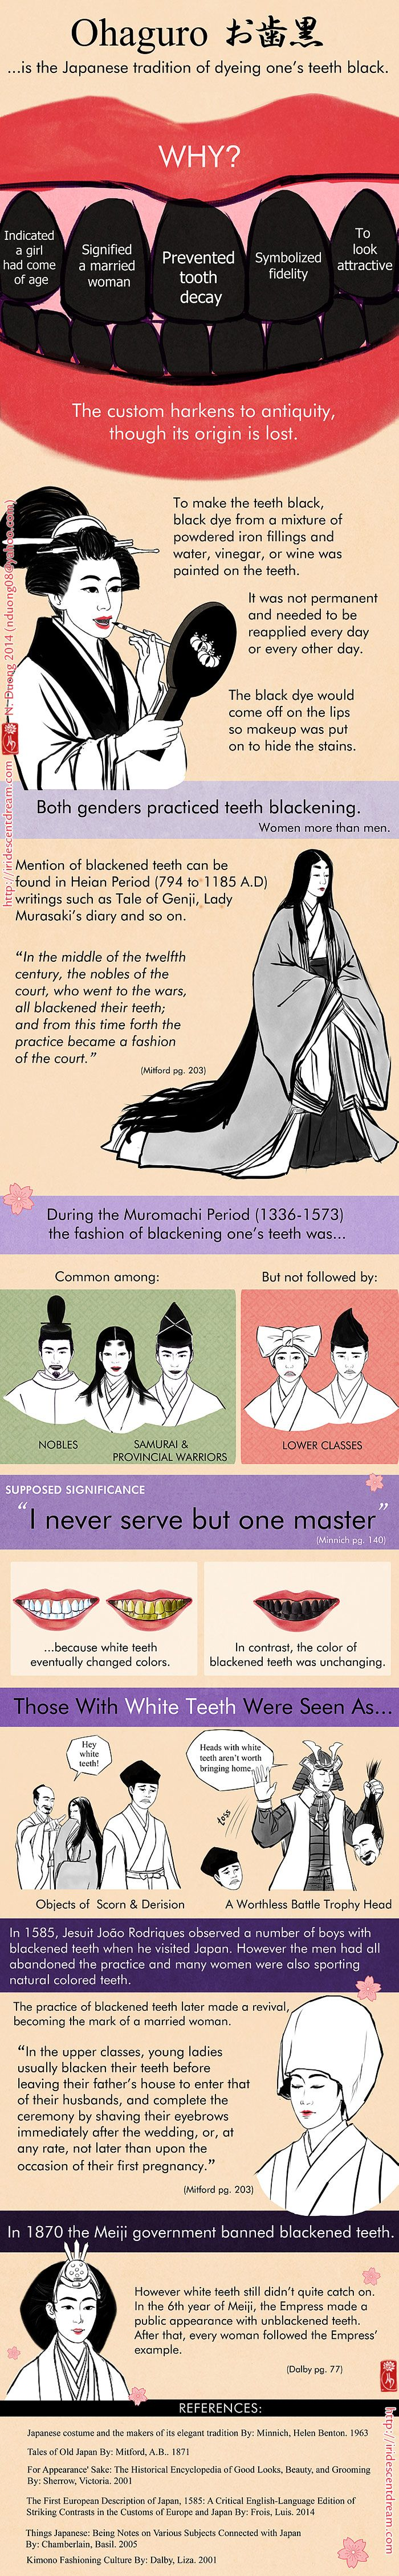 Fashion of Black Teeth in Old Japan by lilsuika.deviantart.com on @DeviantArt